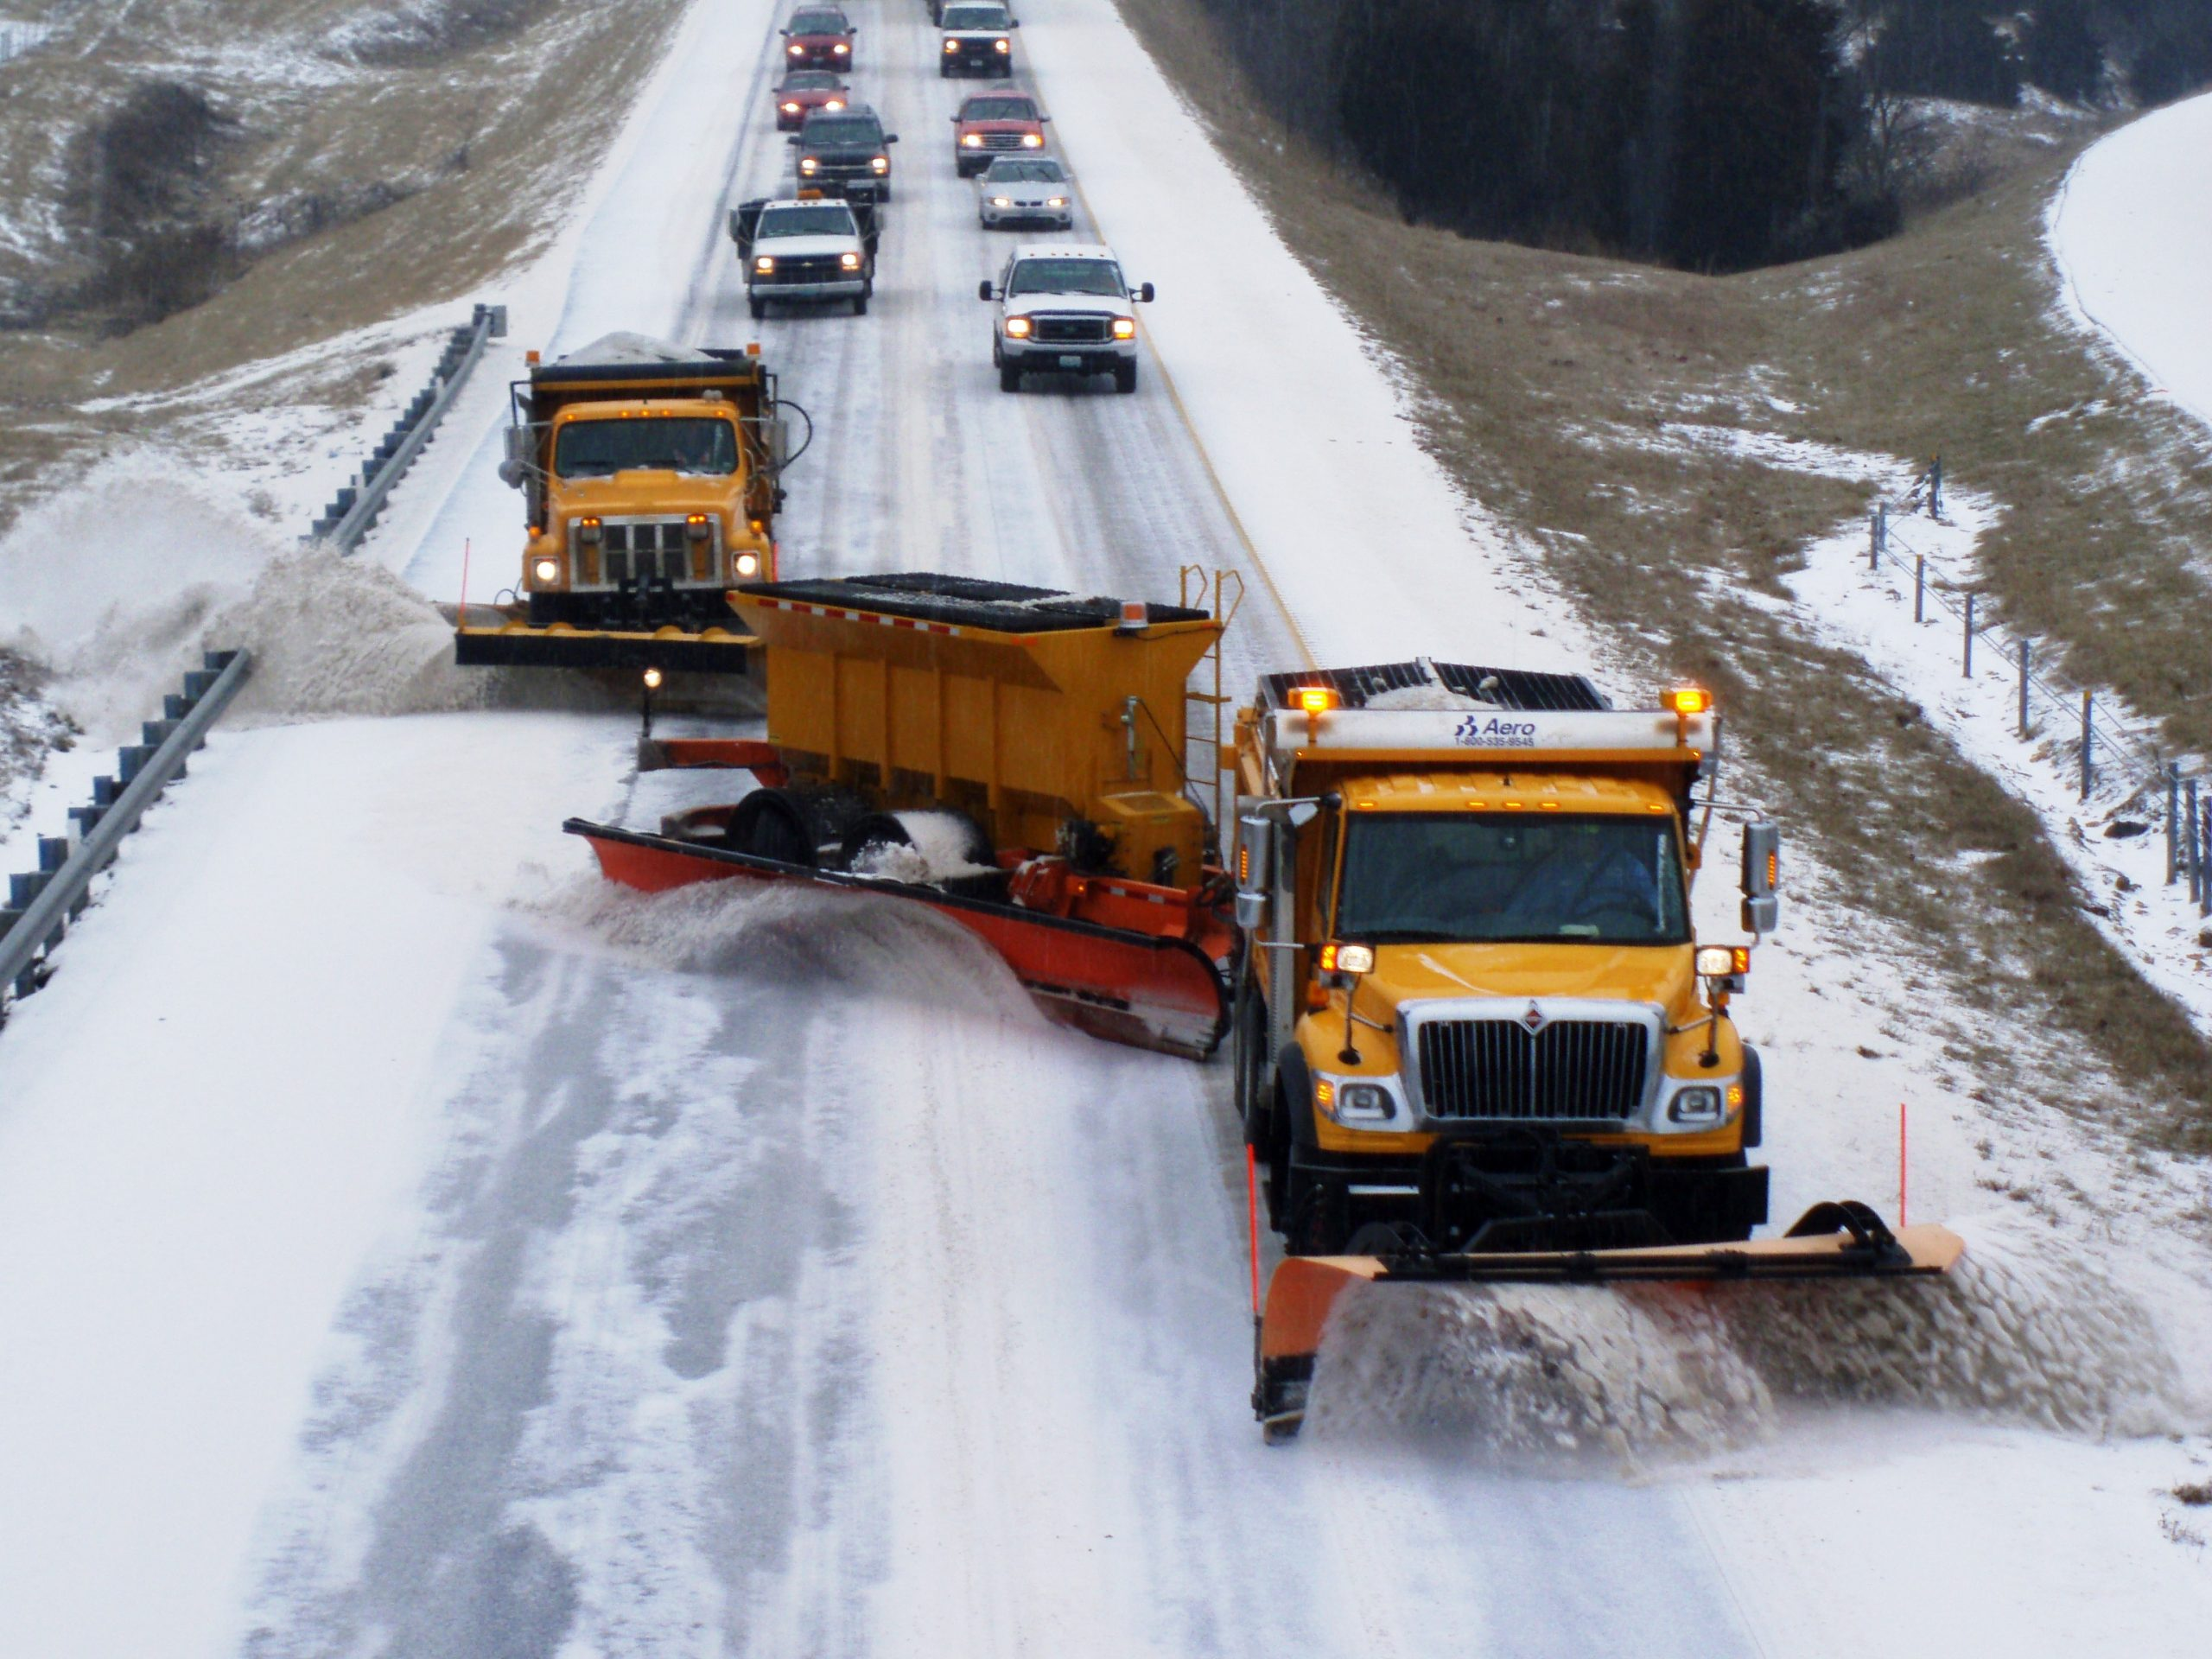 STAY CLEAR OF THE SNOWPLOWS